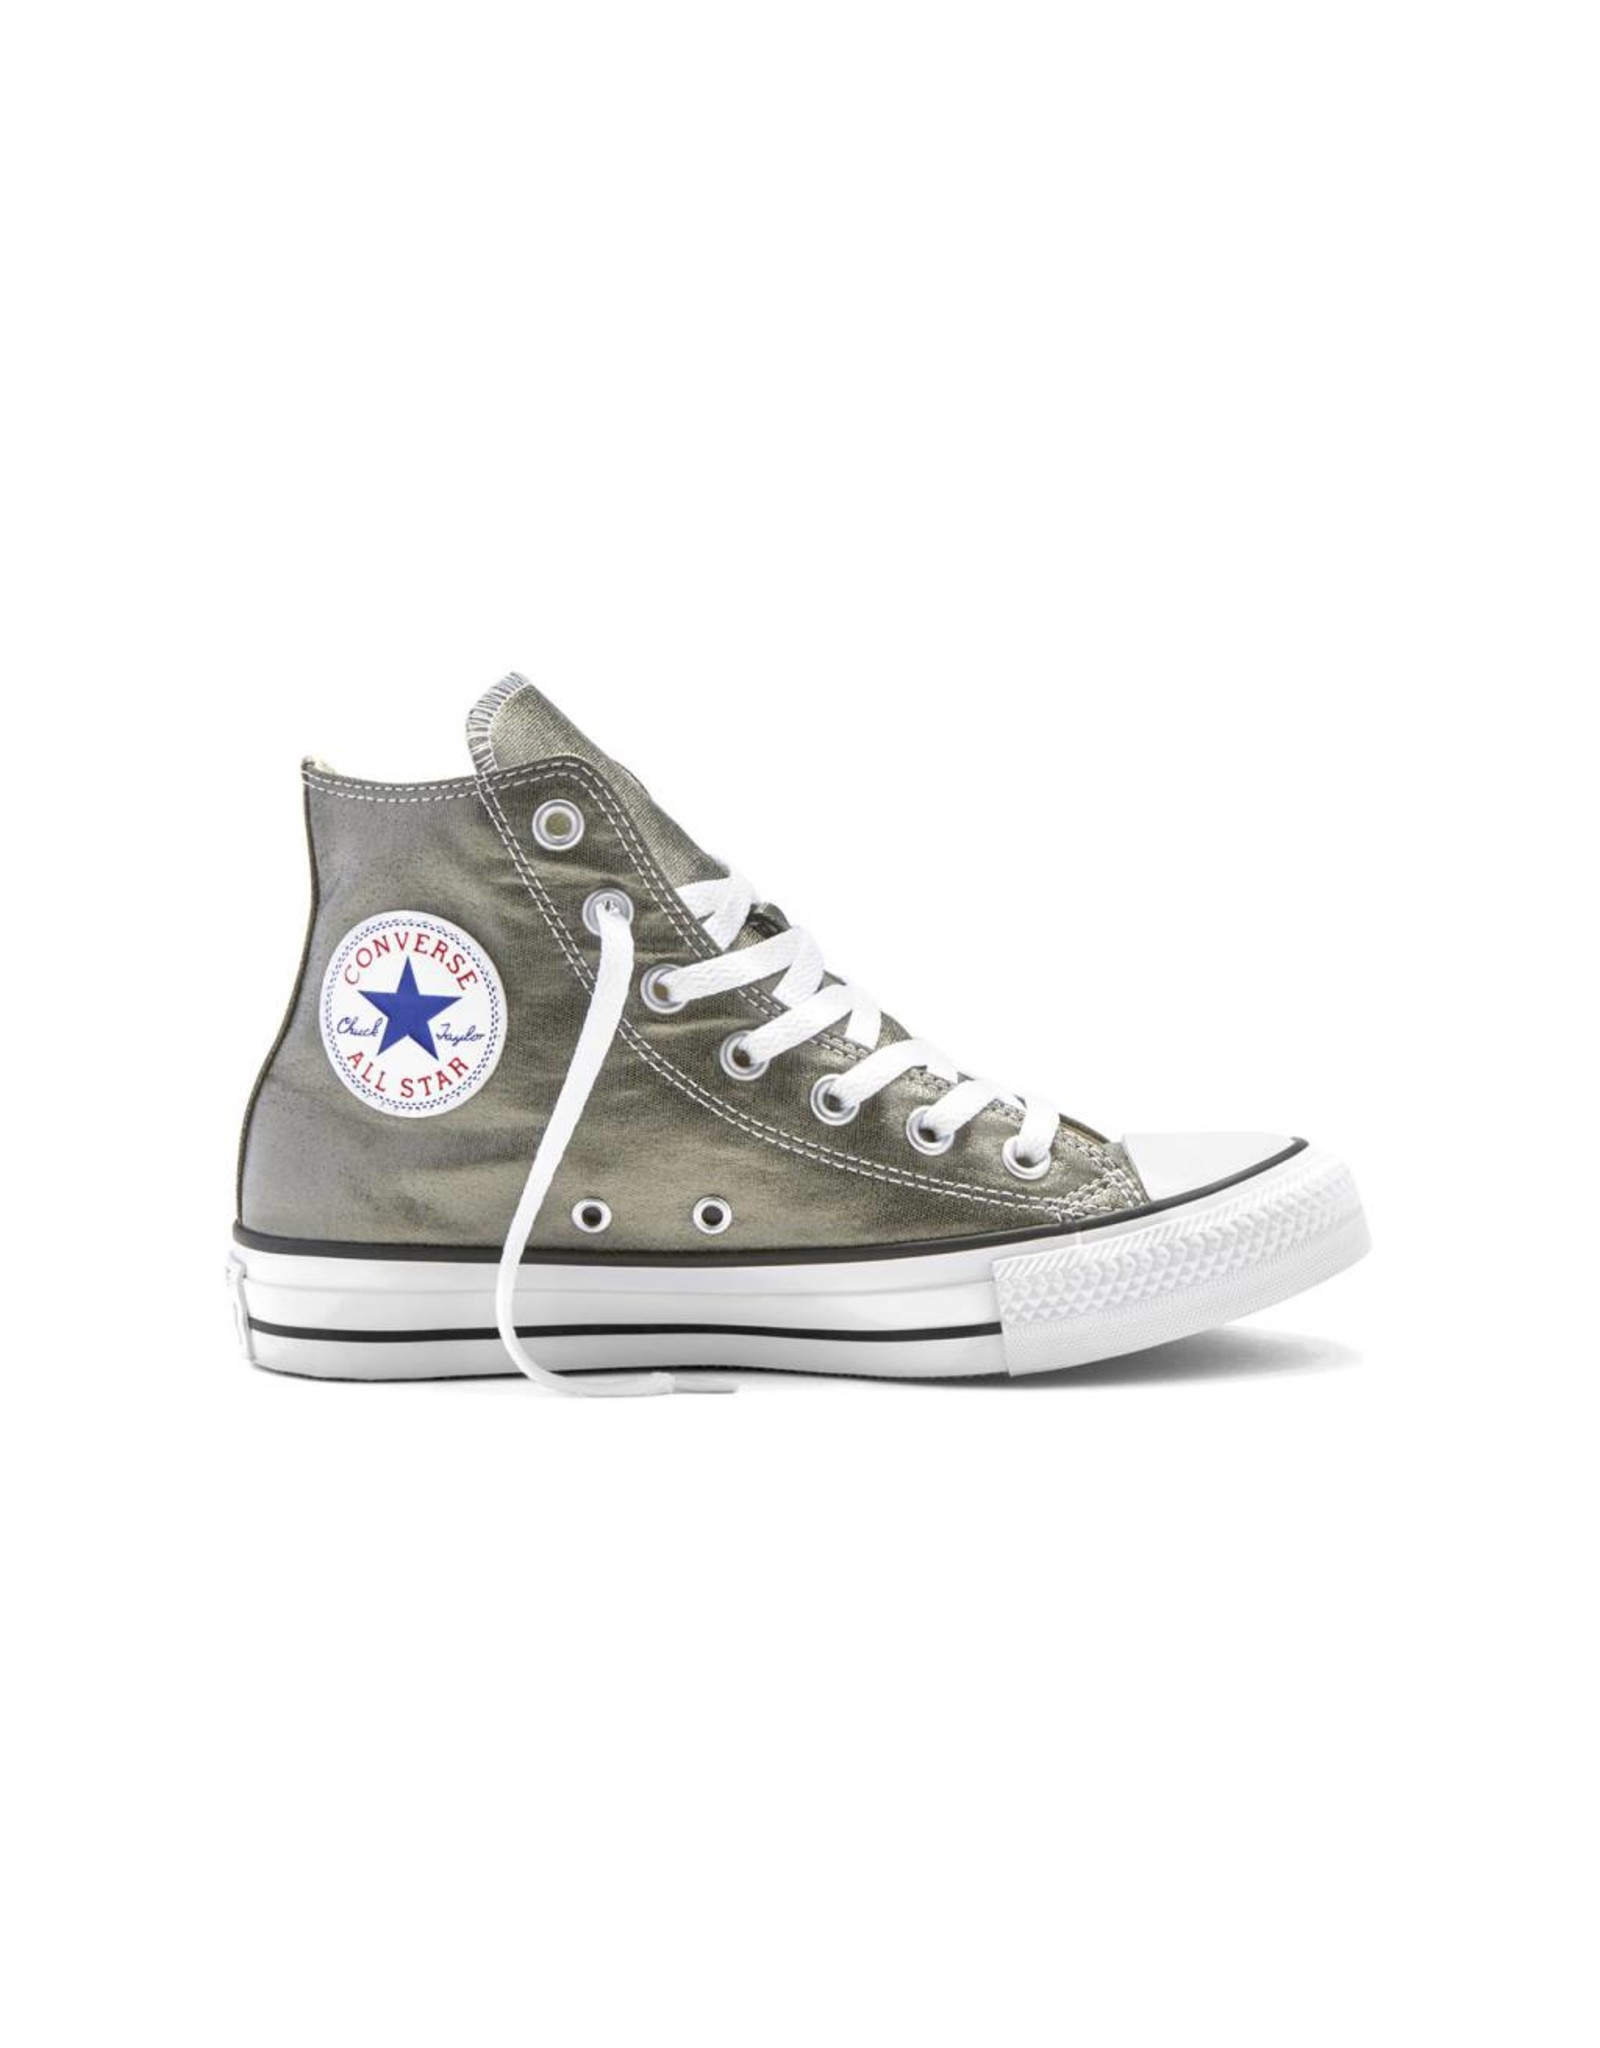 CONVERSE CHUCK TAYLOR HI METALLIC HERBAL/WHITE/BLACK C16MERB-153179C